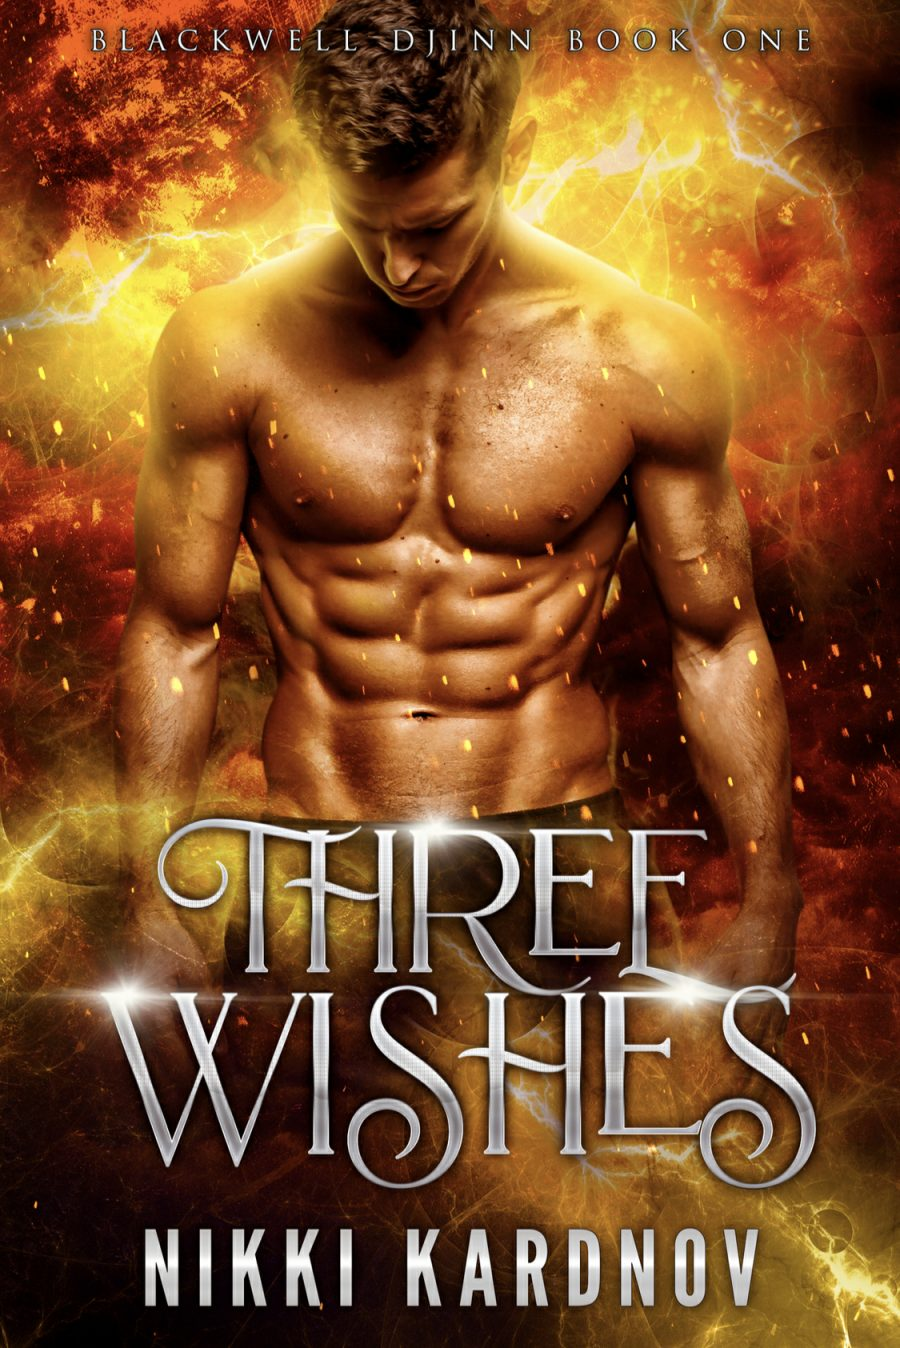 Three Wishes by Nikki Kardnov - A Book Review - Books and Blurbs